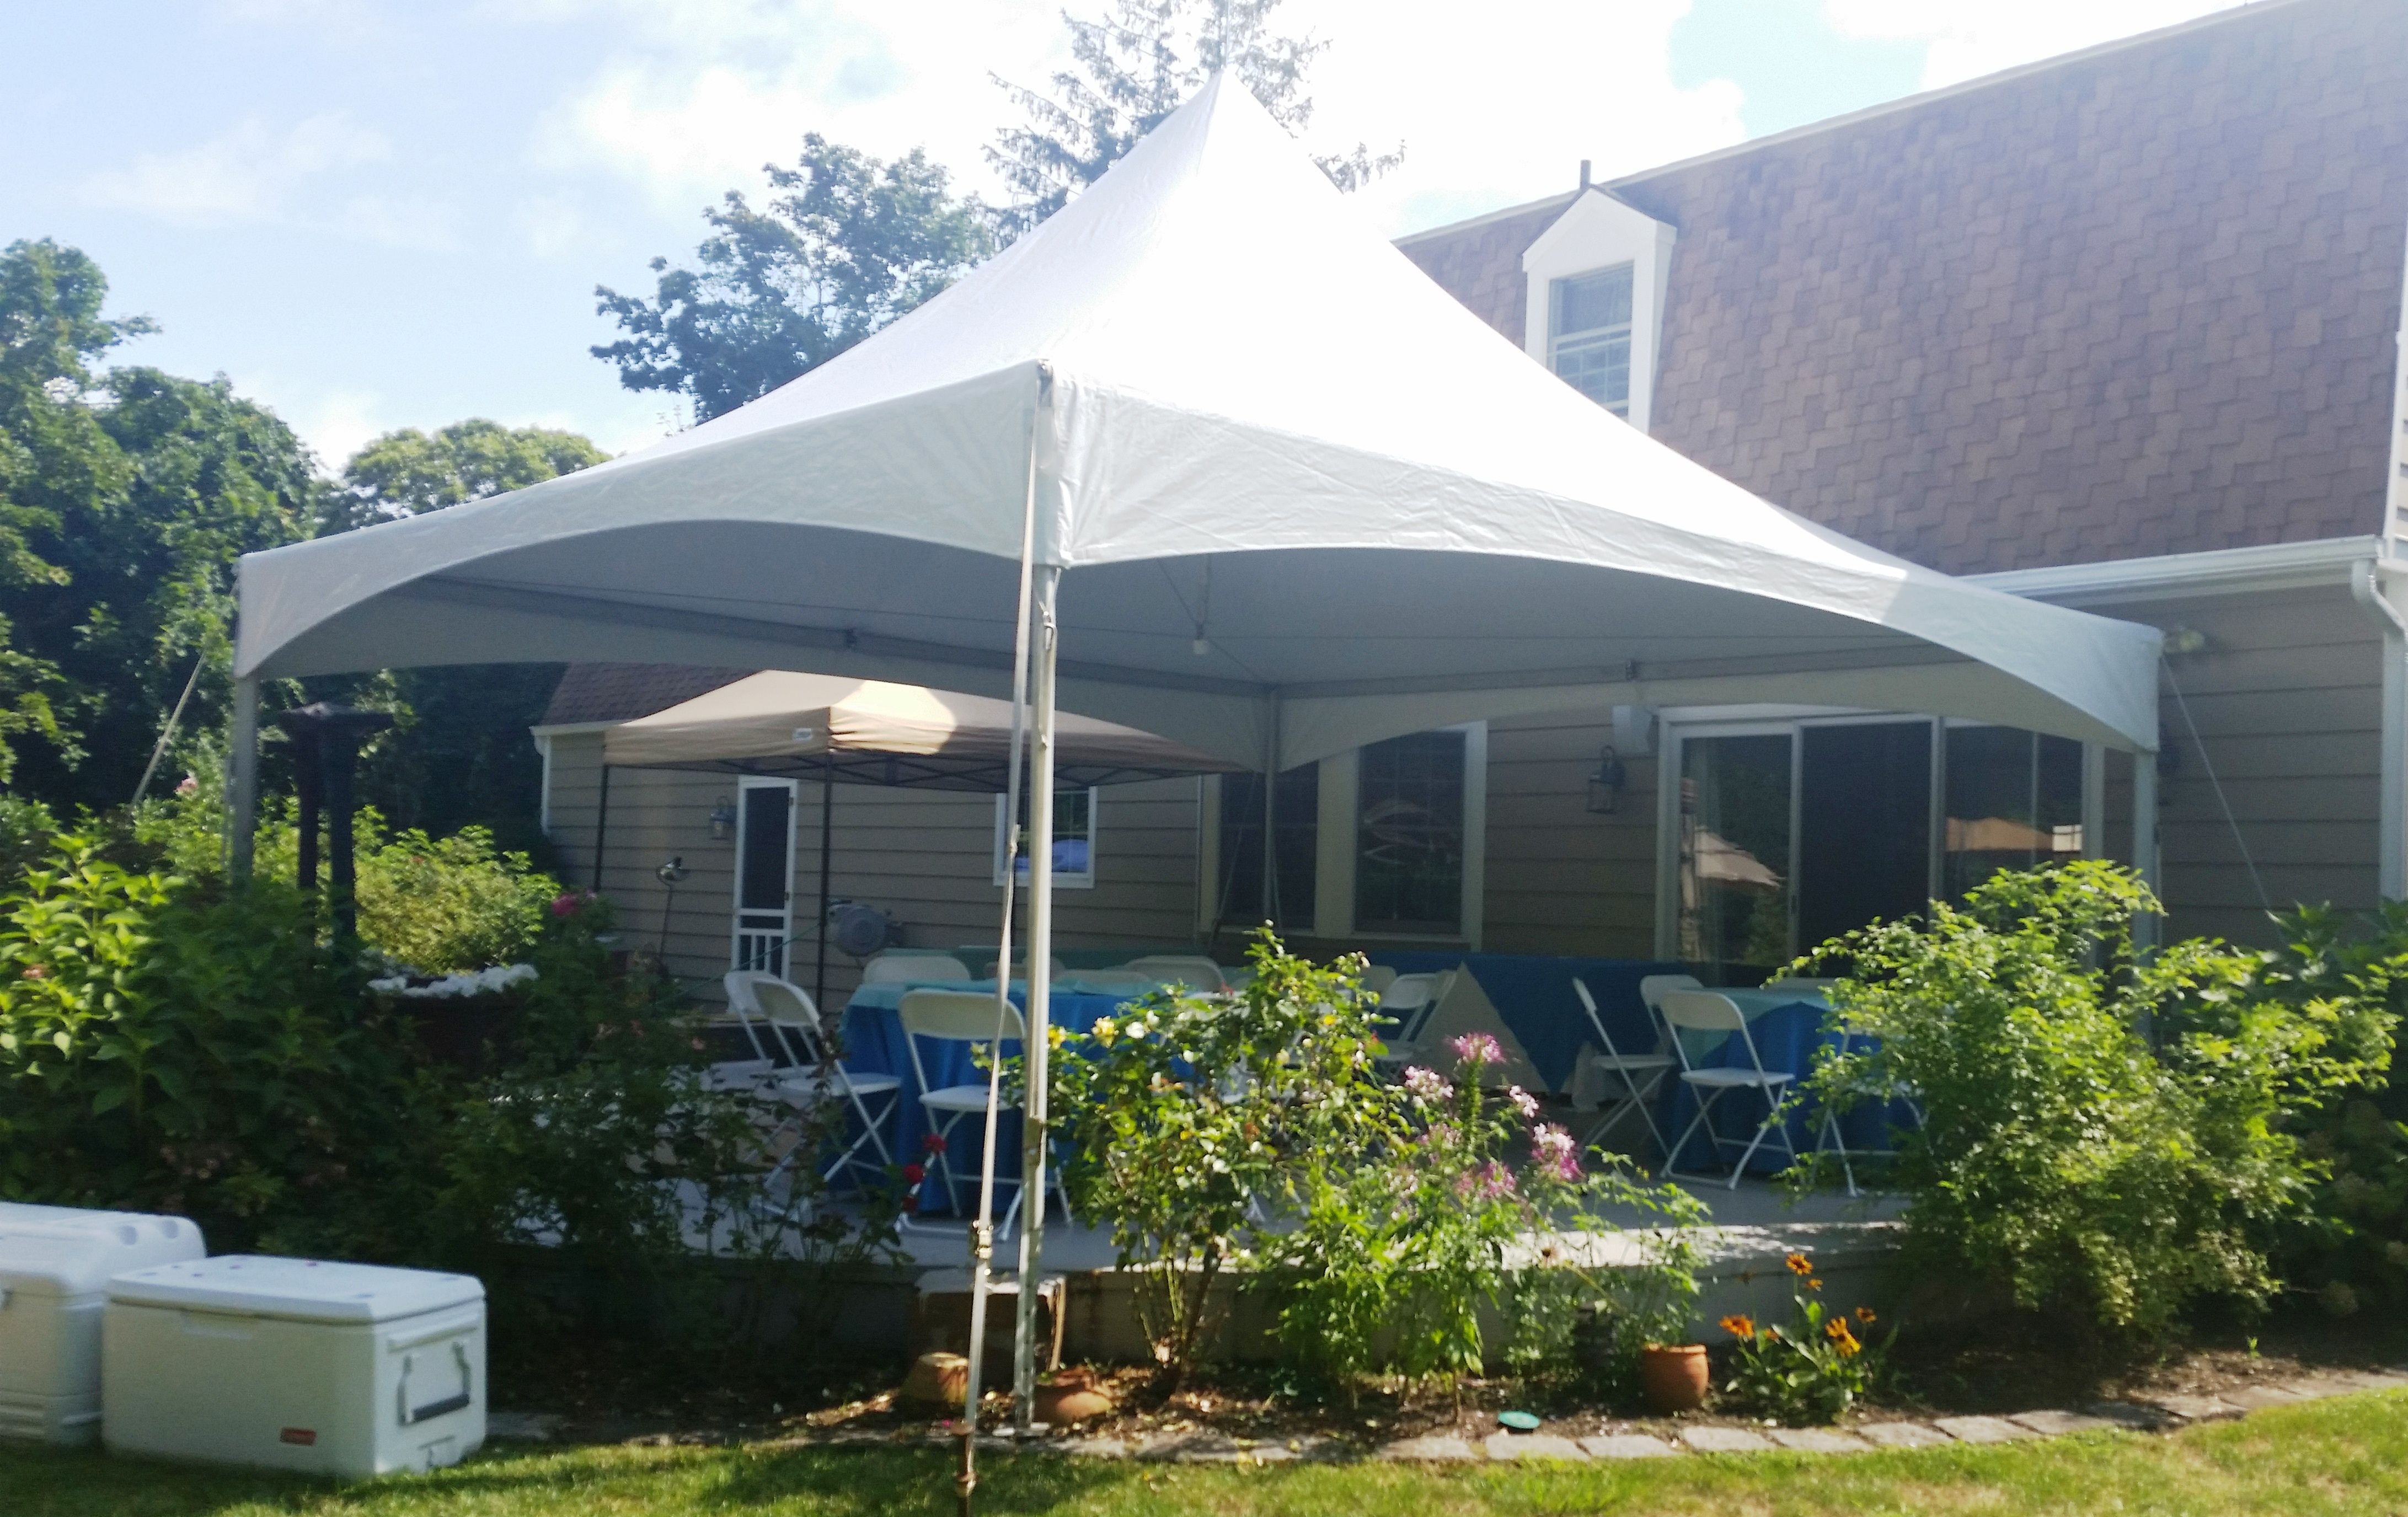 20 X 20 High Peak Tent Over A Cement Patio Patio Tent Bounce House